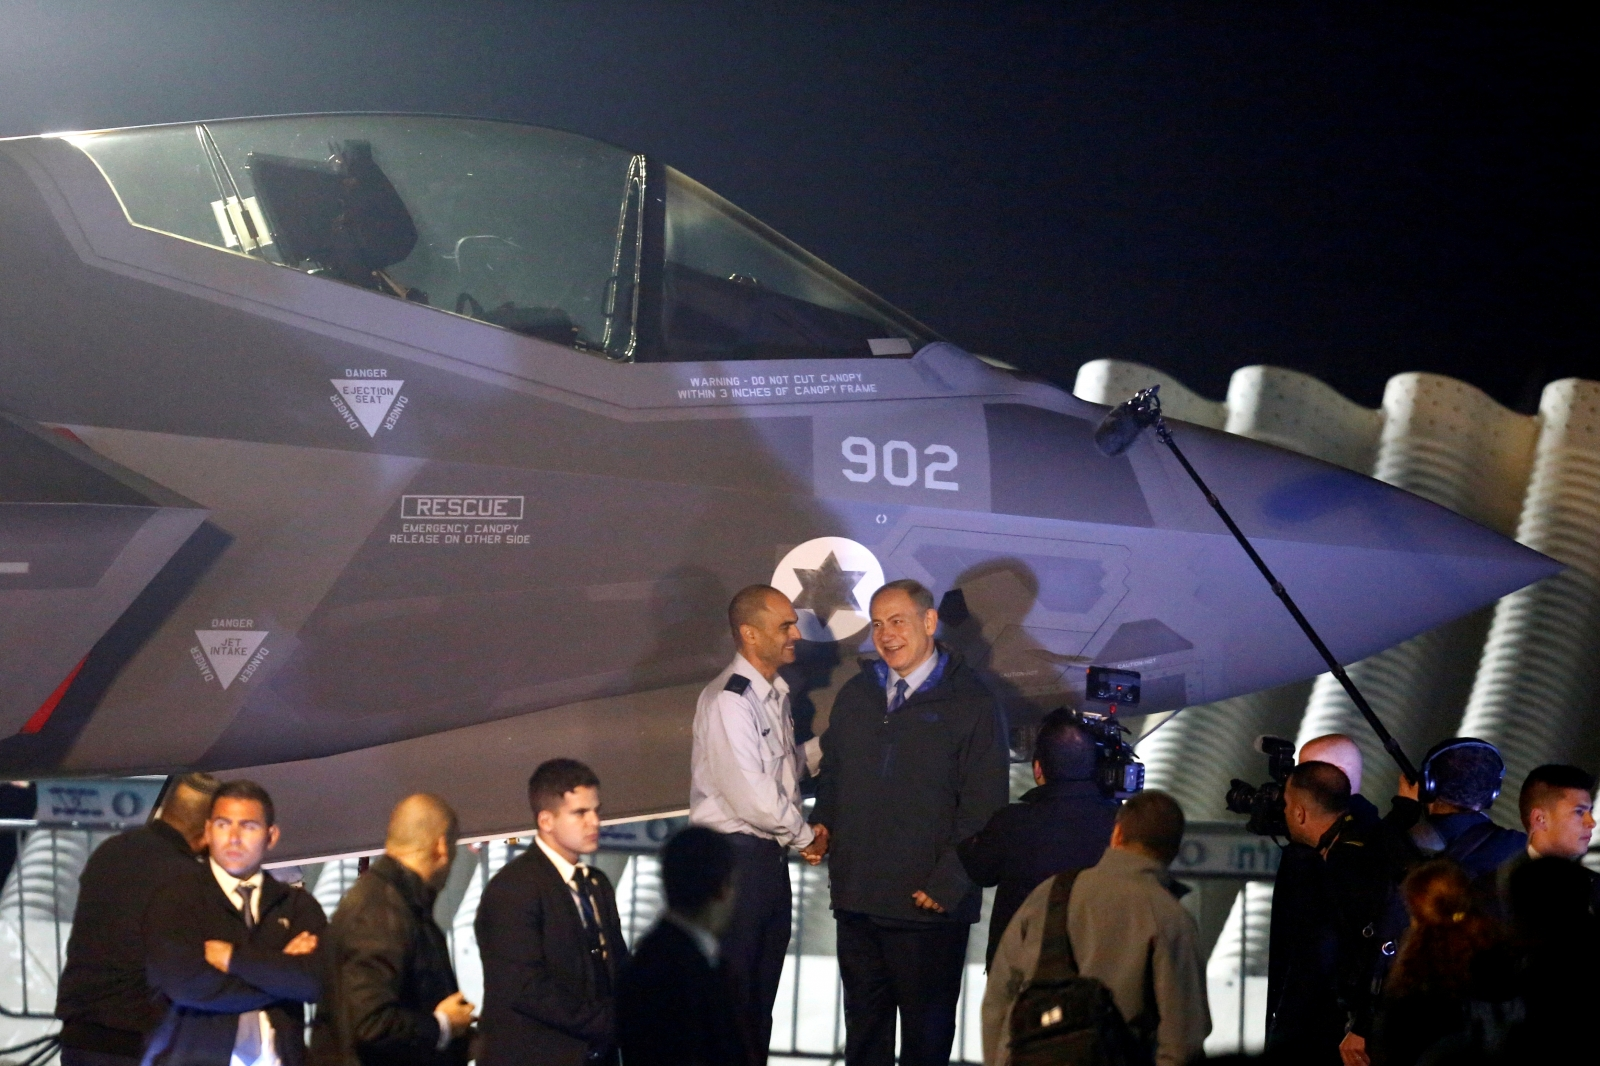 F-35 fighter jets in Israel